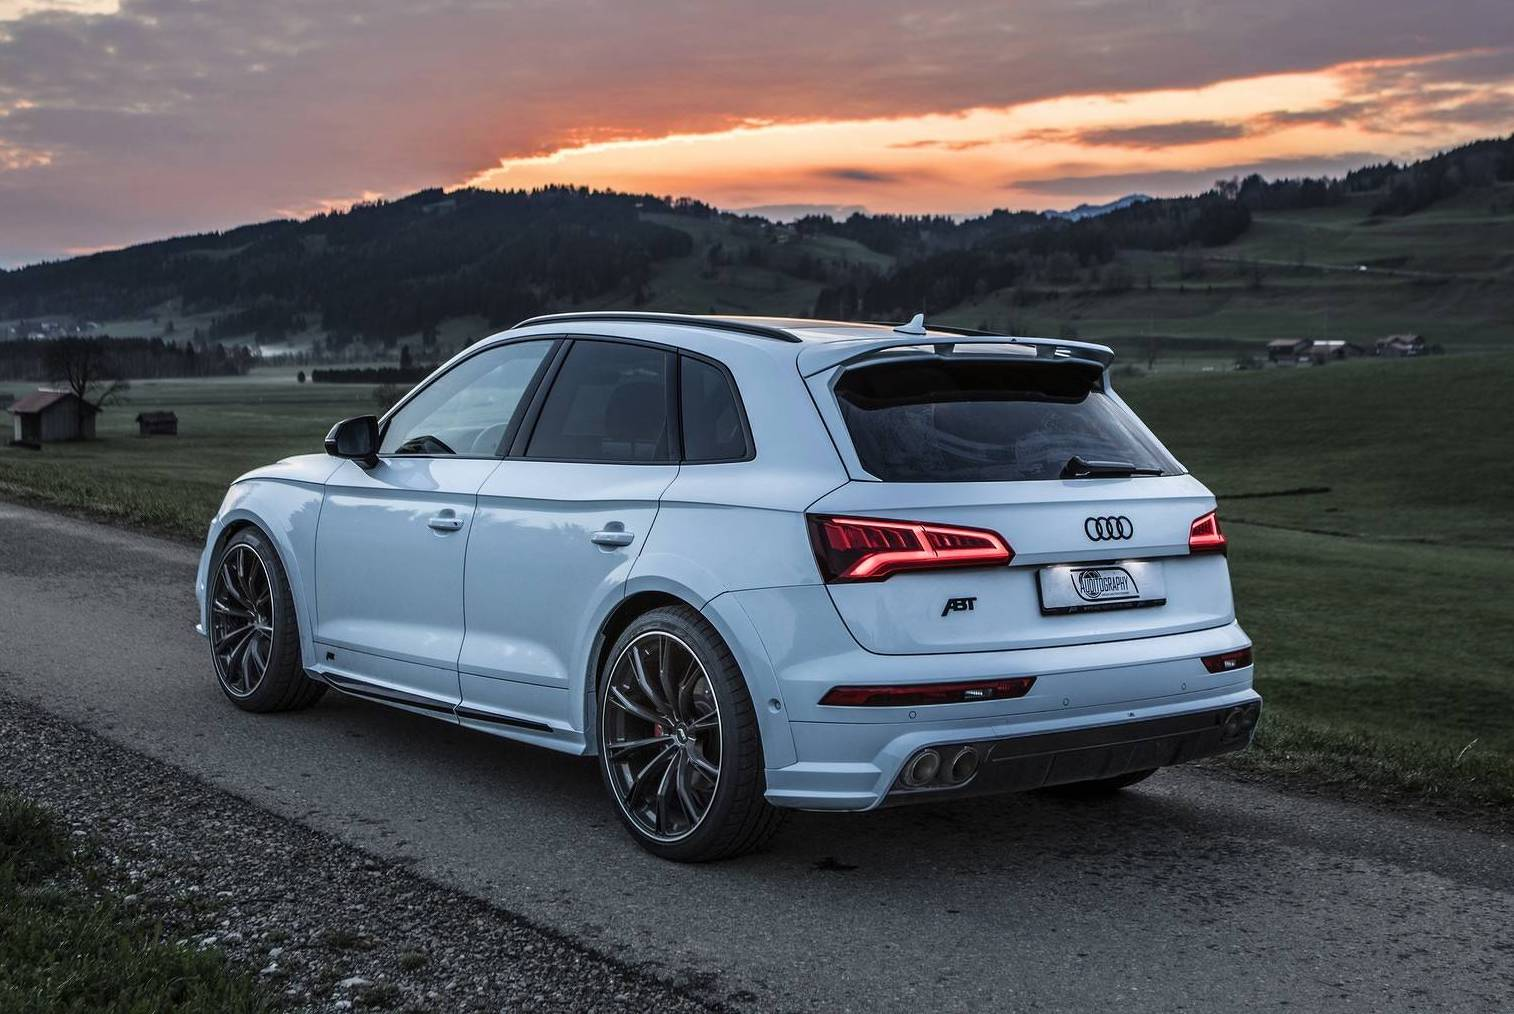 2018 Audi SQ5 ABT-rear